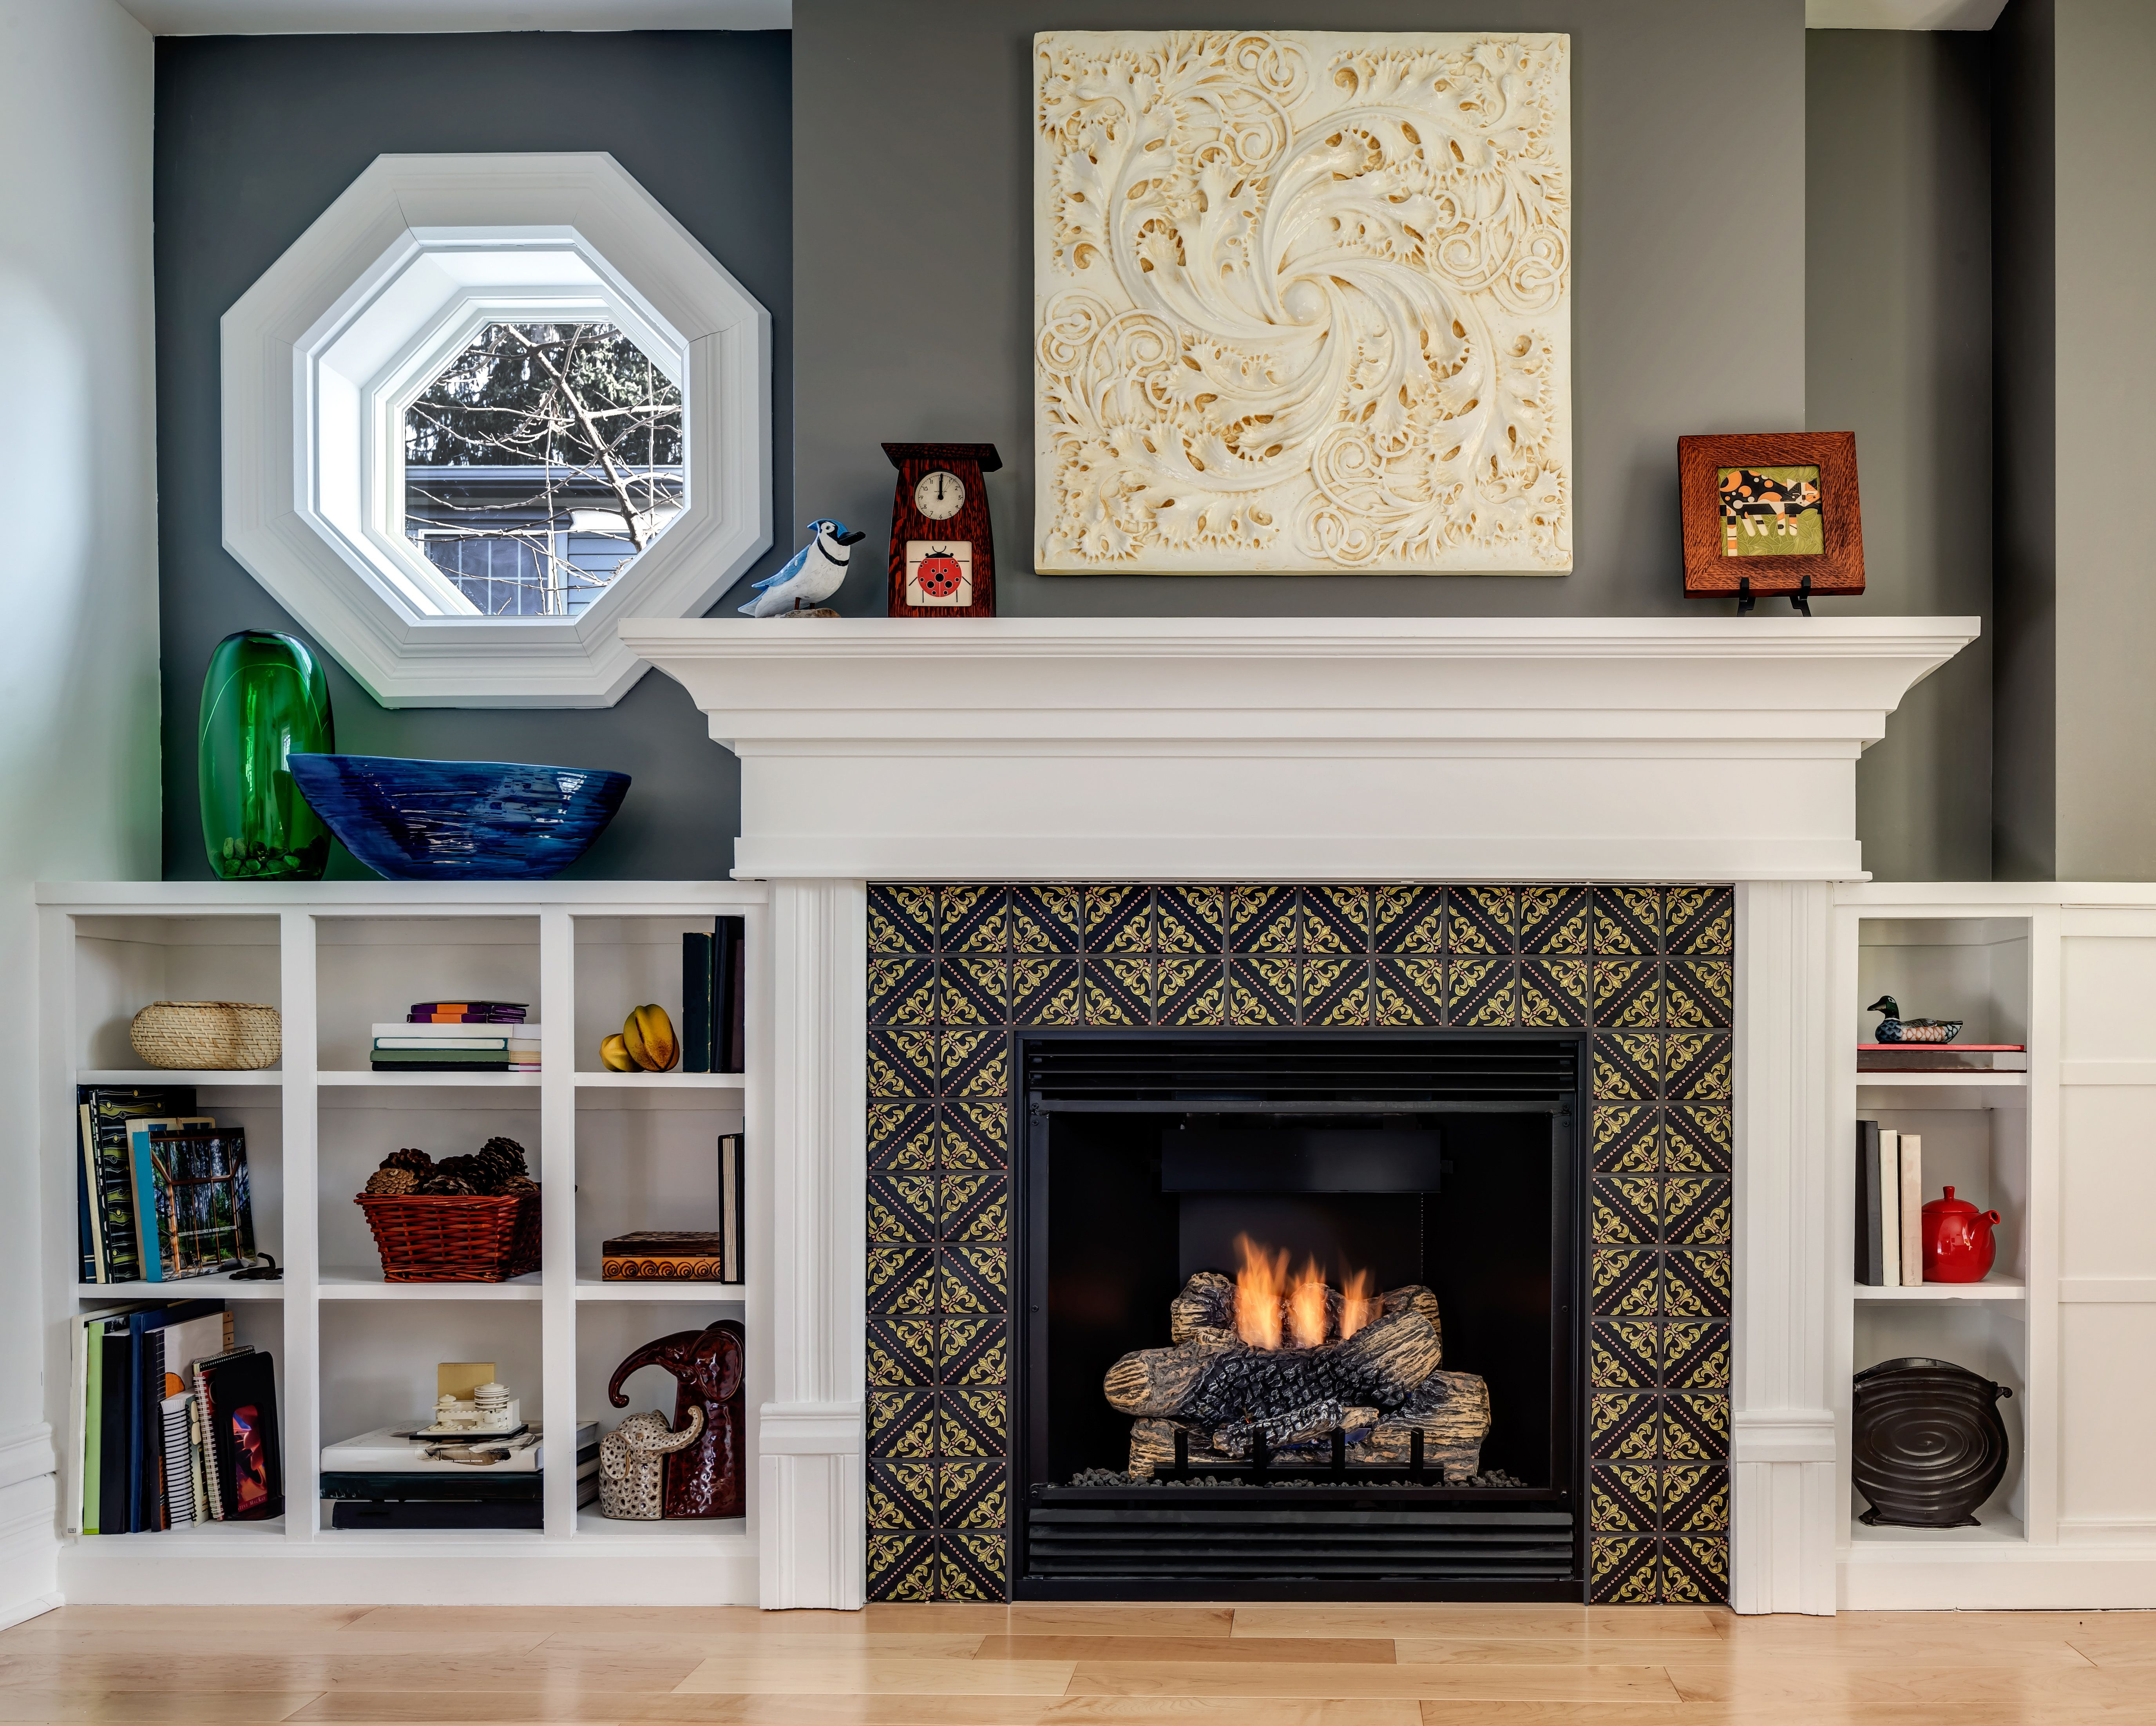 Tiled Fireplaces Images Beautiful This Small but Stylish Fireplace Features Our Lisbon Tile